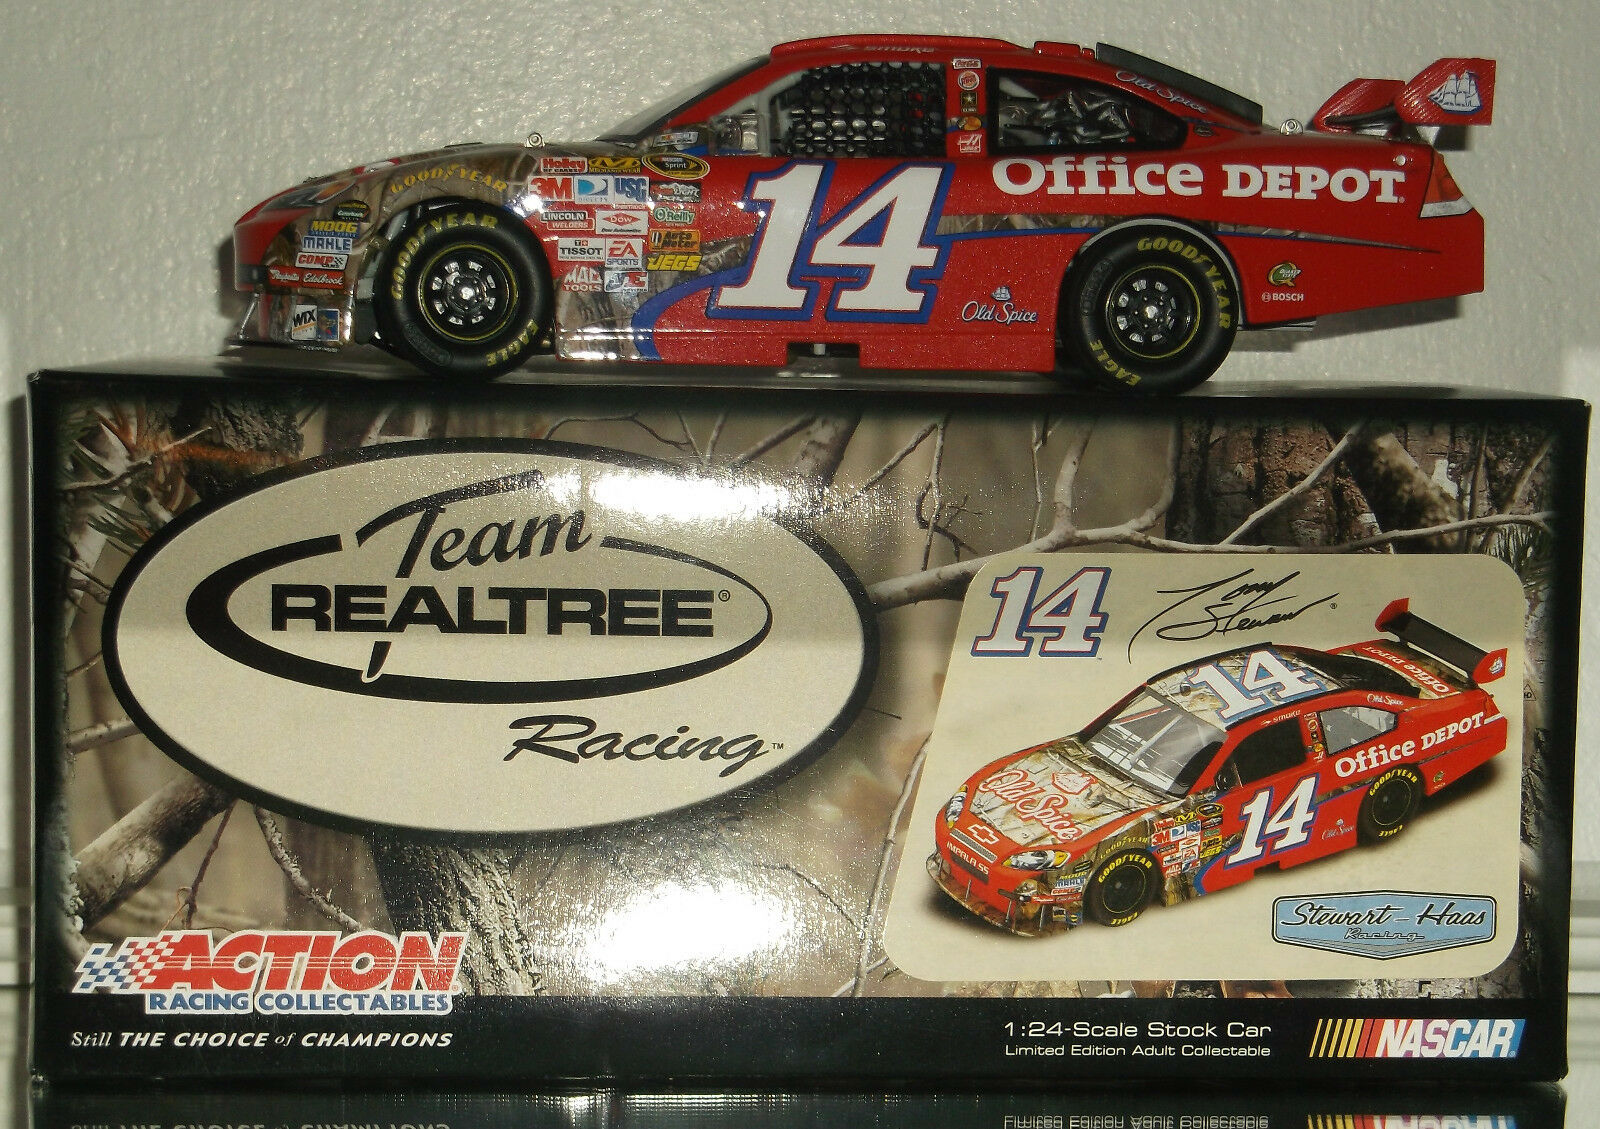 2009 TONY STEWART OLD SPICE REAL TREE 1 24 CAROF 1960 MADE NICE CAR